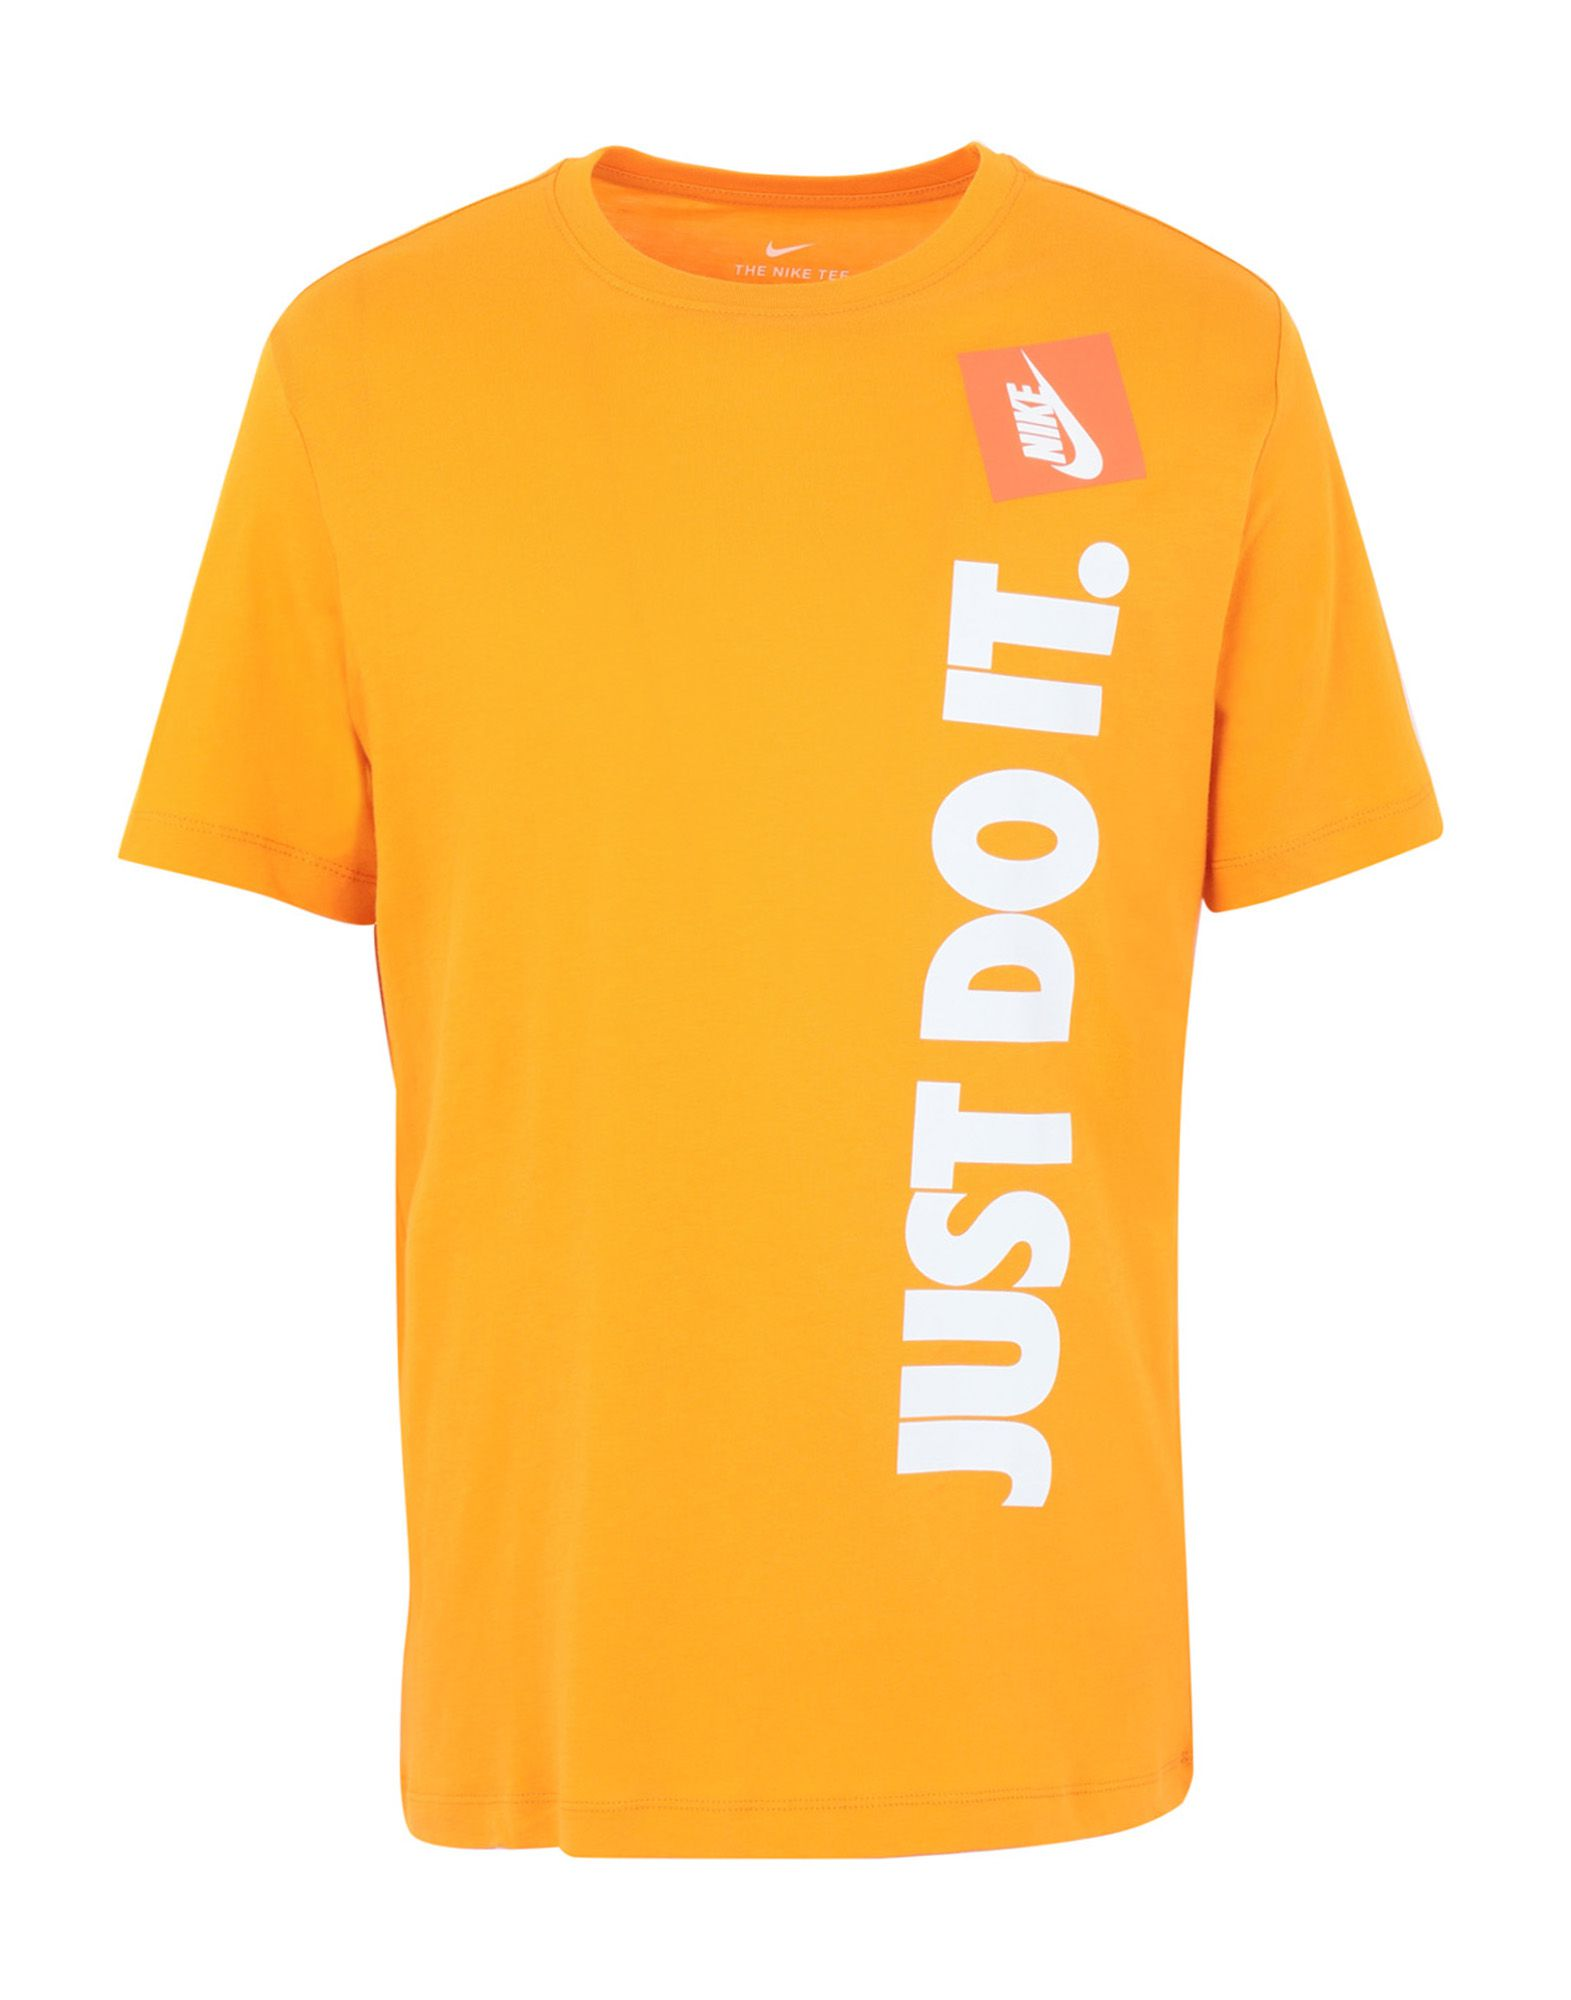 T-Shirt Sportiva Nike Tee Hybrid Just Do It It It - uomo - 12347976LI 48d